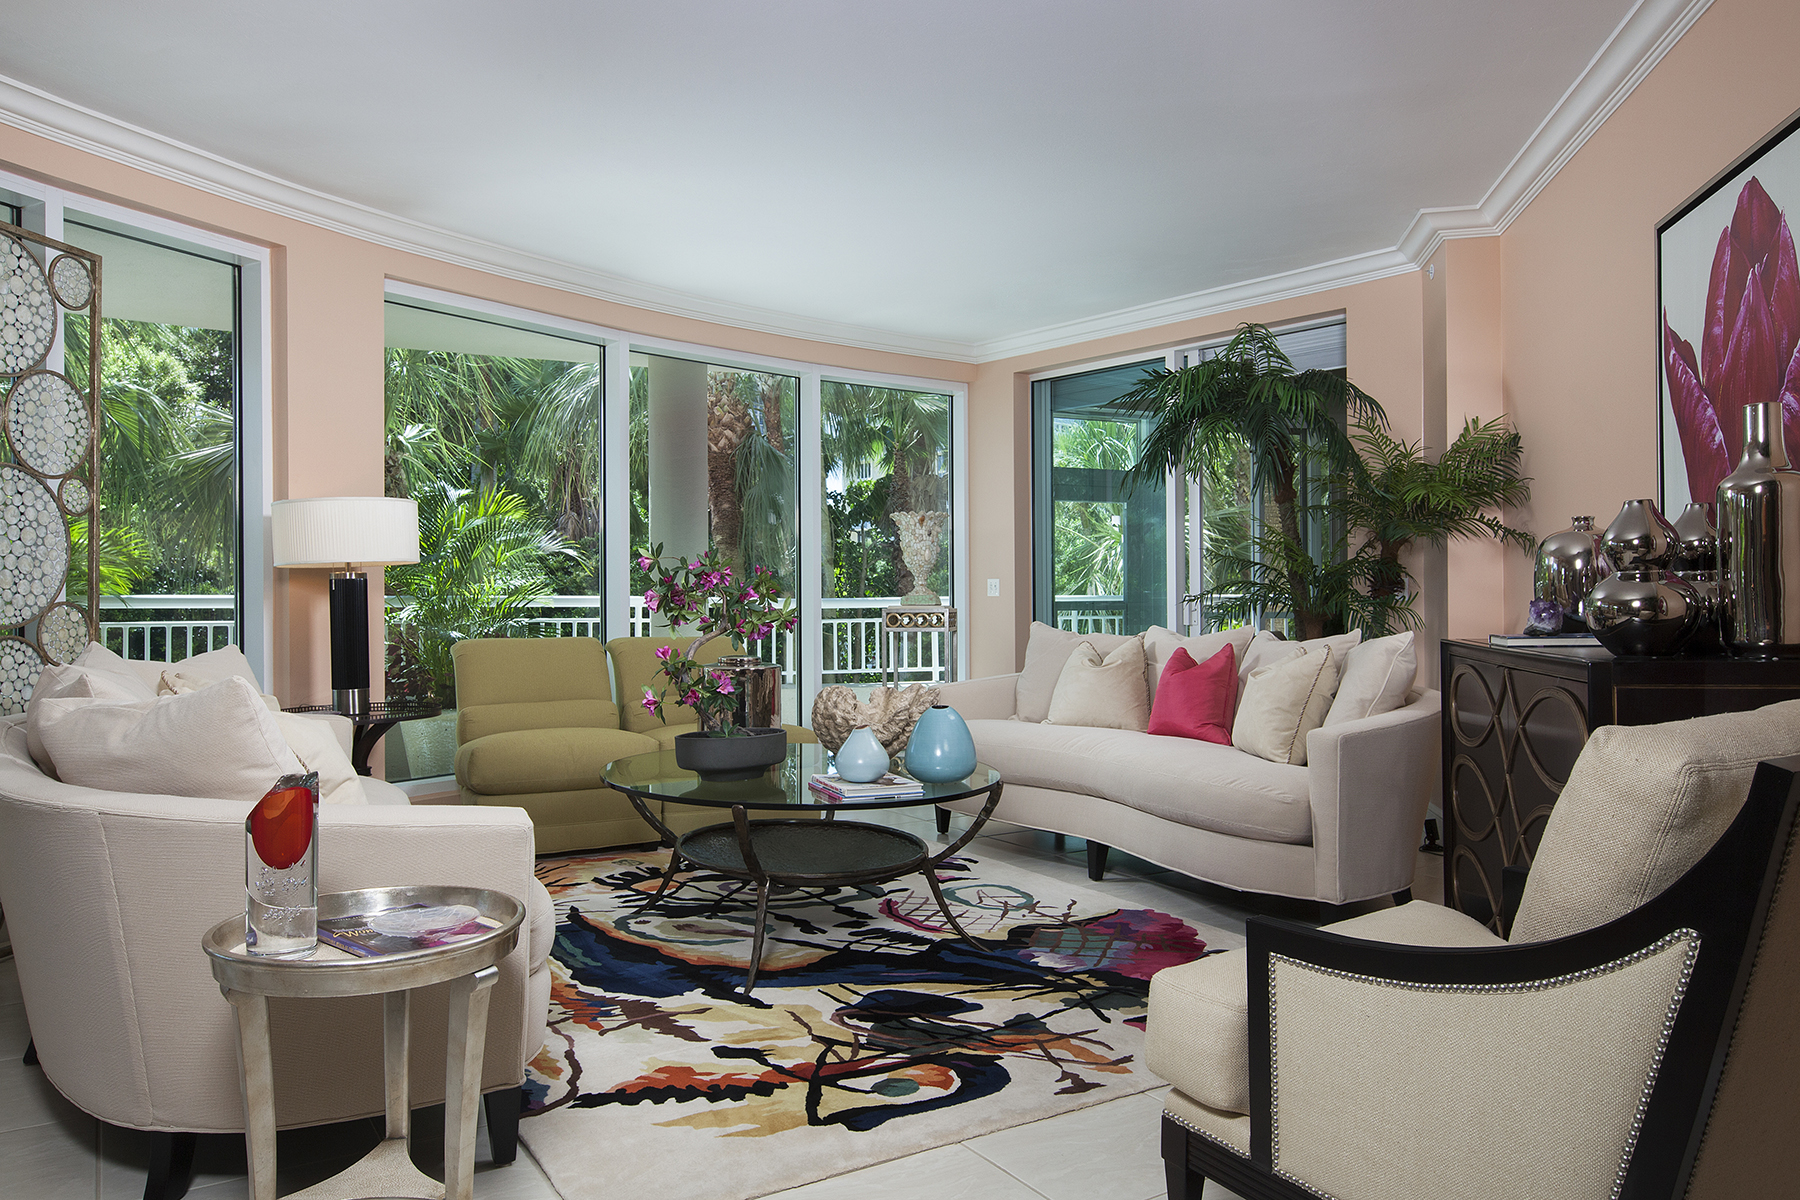 Condominium for Sale at PARK SHORE - PROVENCE 4151 Gulf Shore Blvd N 201 Naples, Florida, 34103 United States